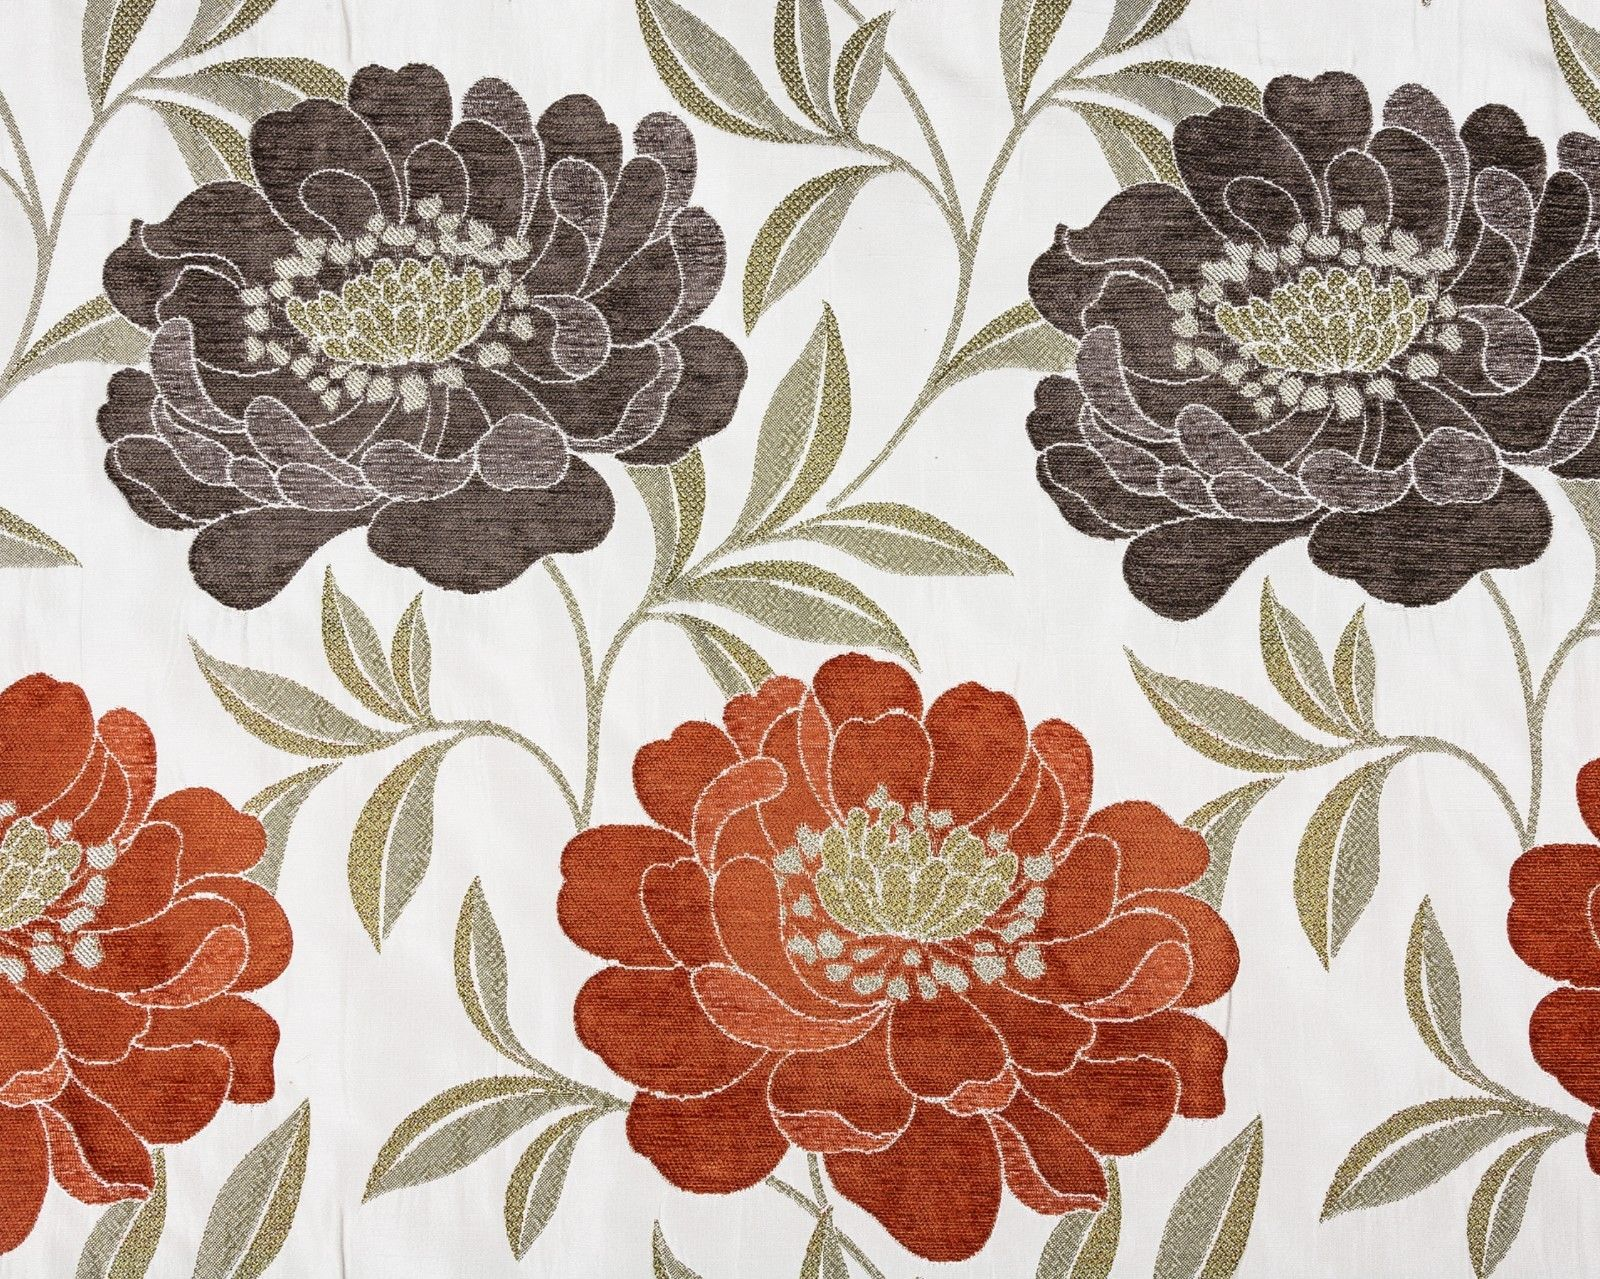 Eden Rose Floral Embossed Design Pattern Chenille Curtain Fabric Material Woven